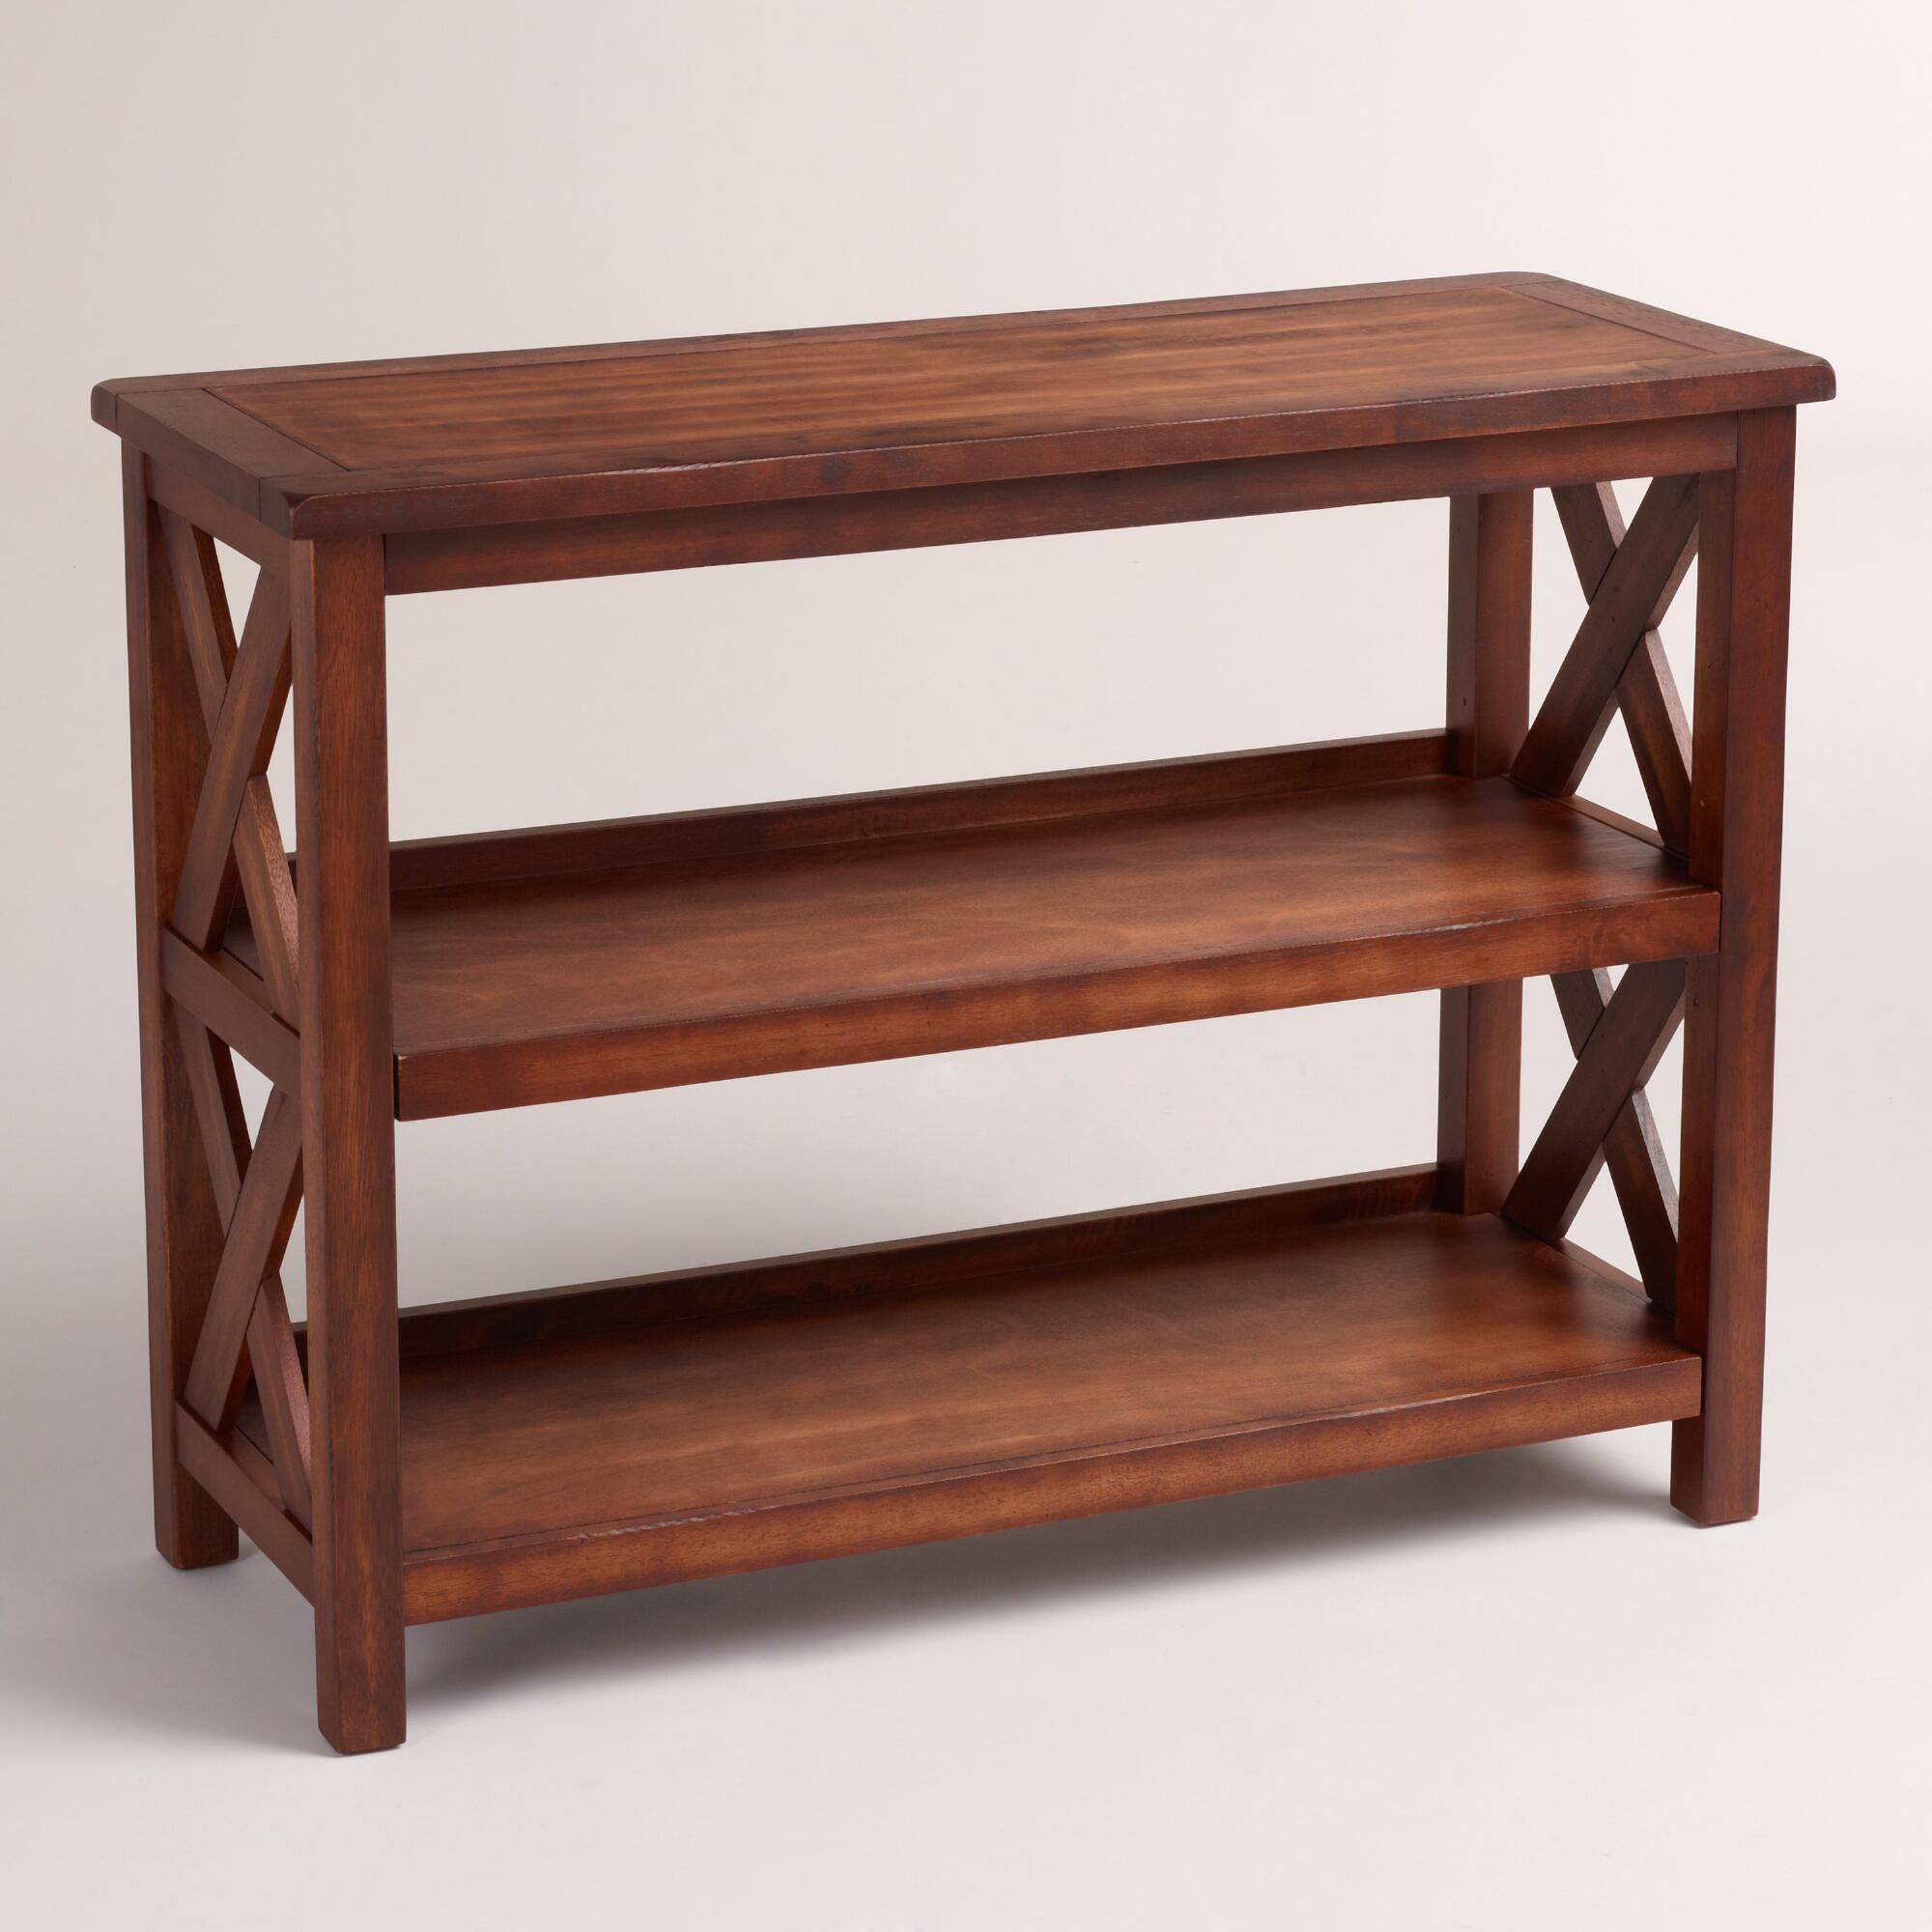 Verona Two-Shelf Bookshelf | World Market